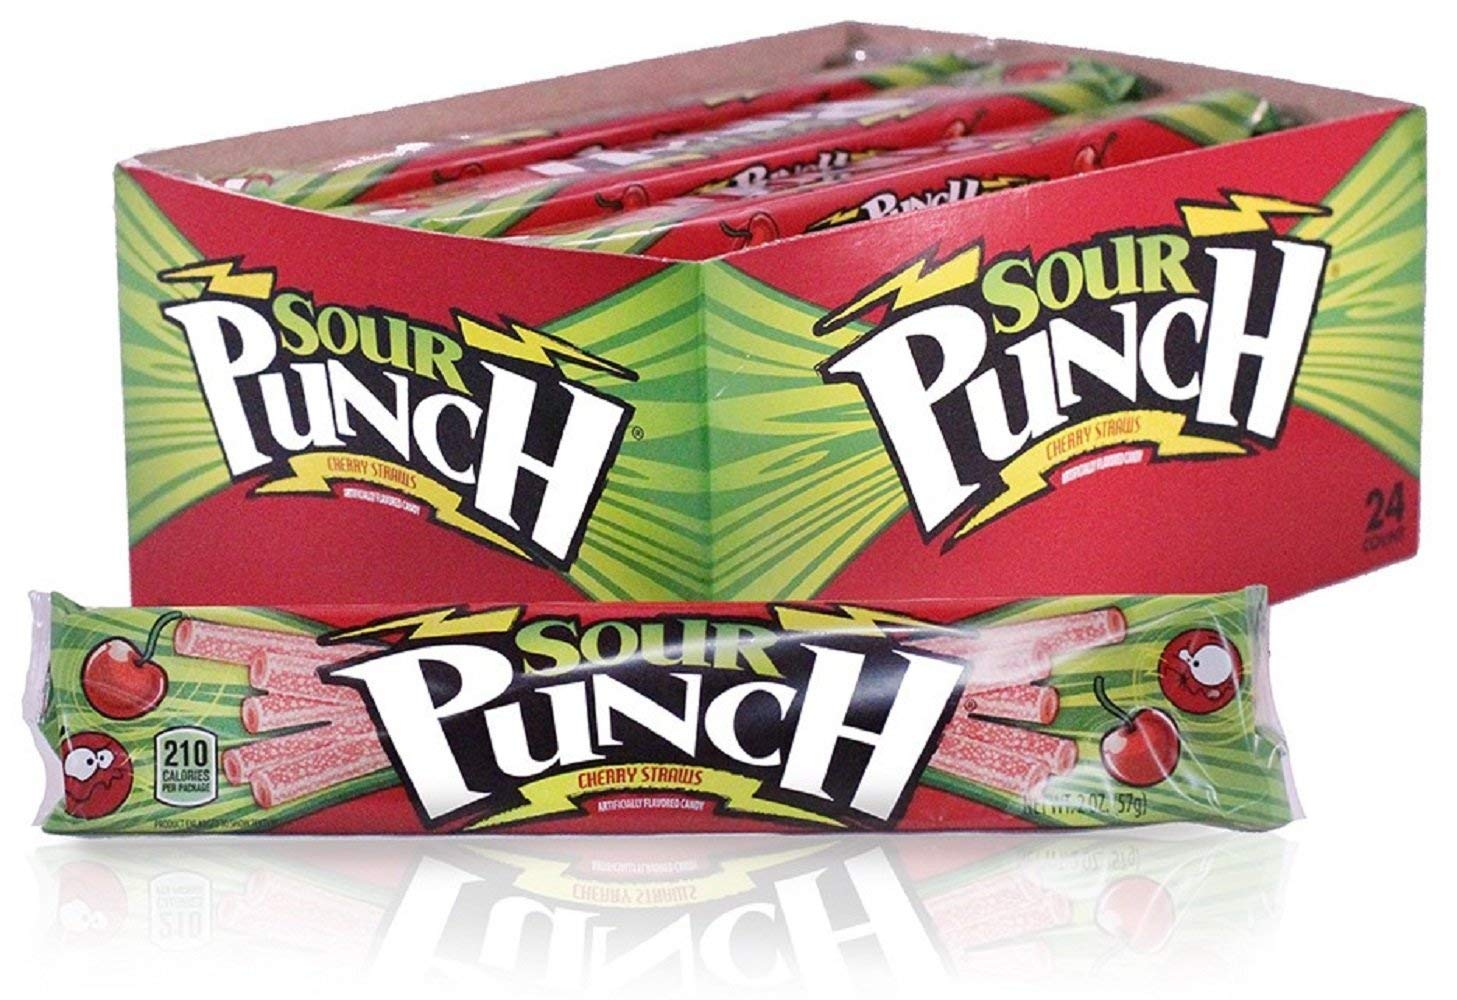 Sour Punch Straws, Cherry Fruit Flavor, Soft & Chewy Candy, 2oz Tray (24 Pack) by Sour Punch